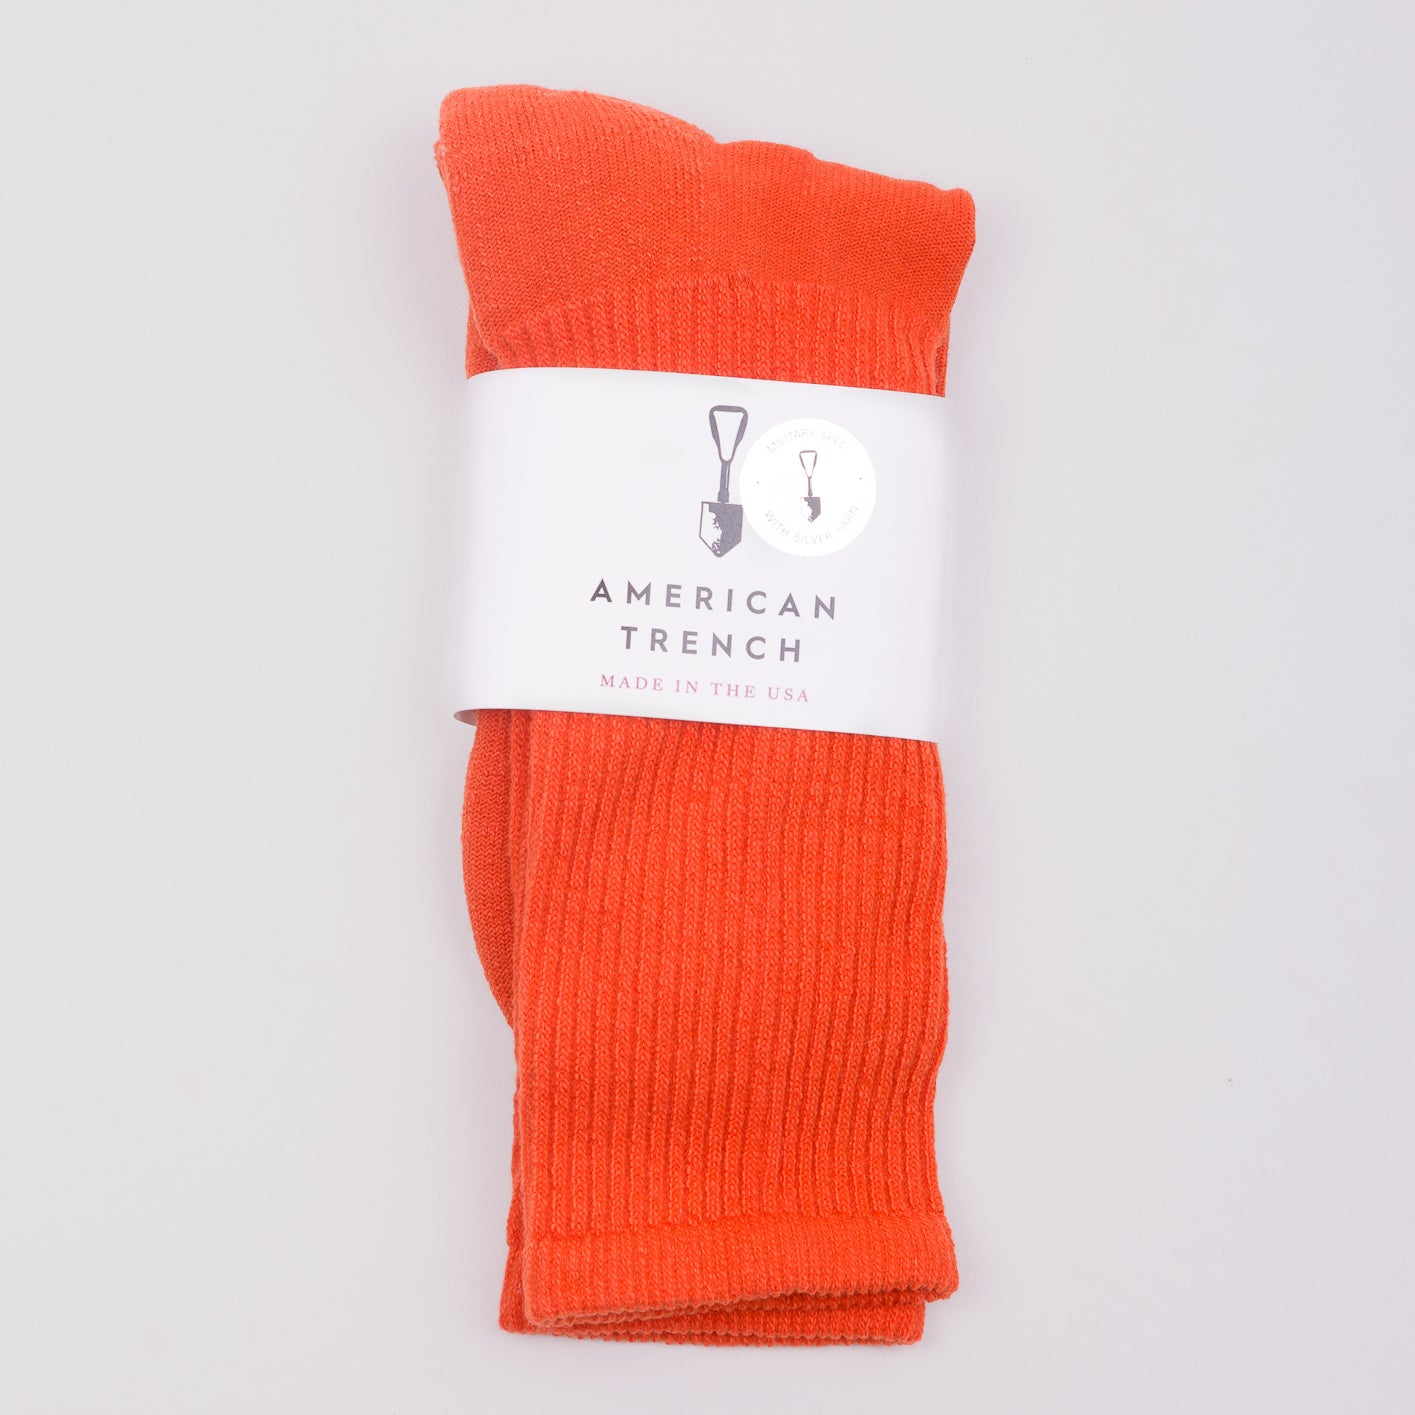 AMERICAN TRENCH MIL-SPEC SPORT SOCK - ORANGE